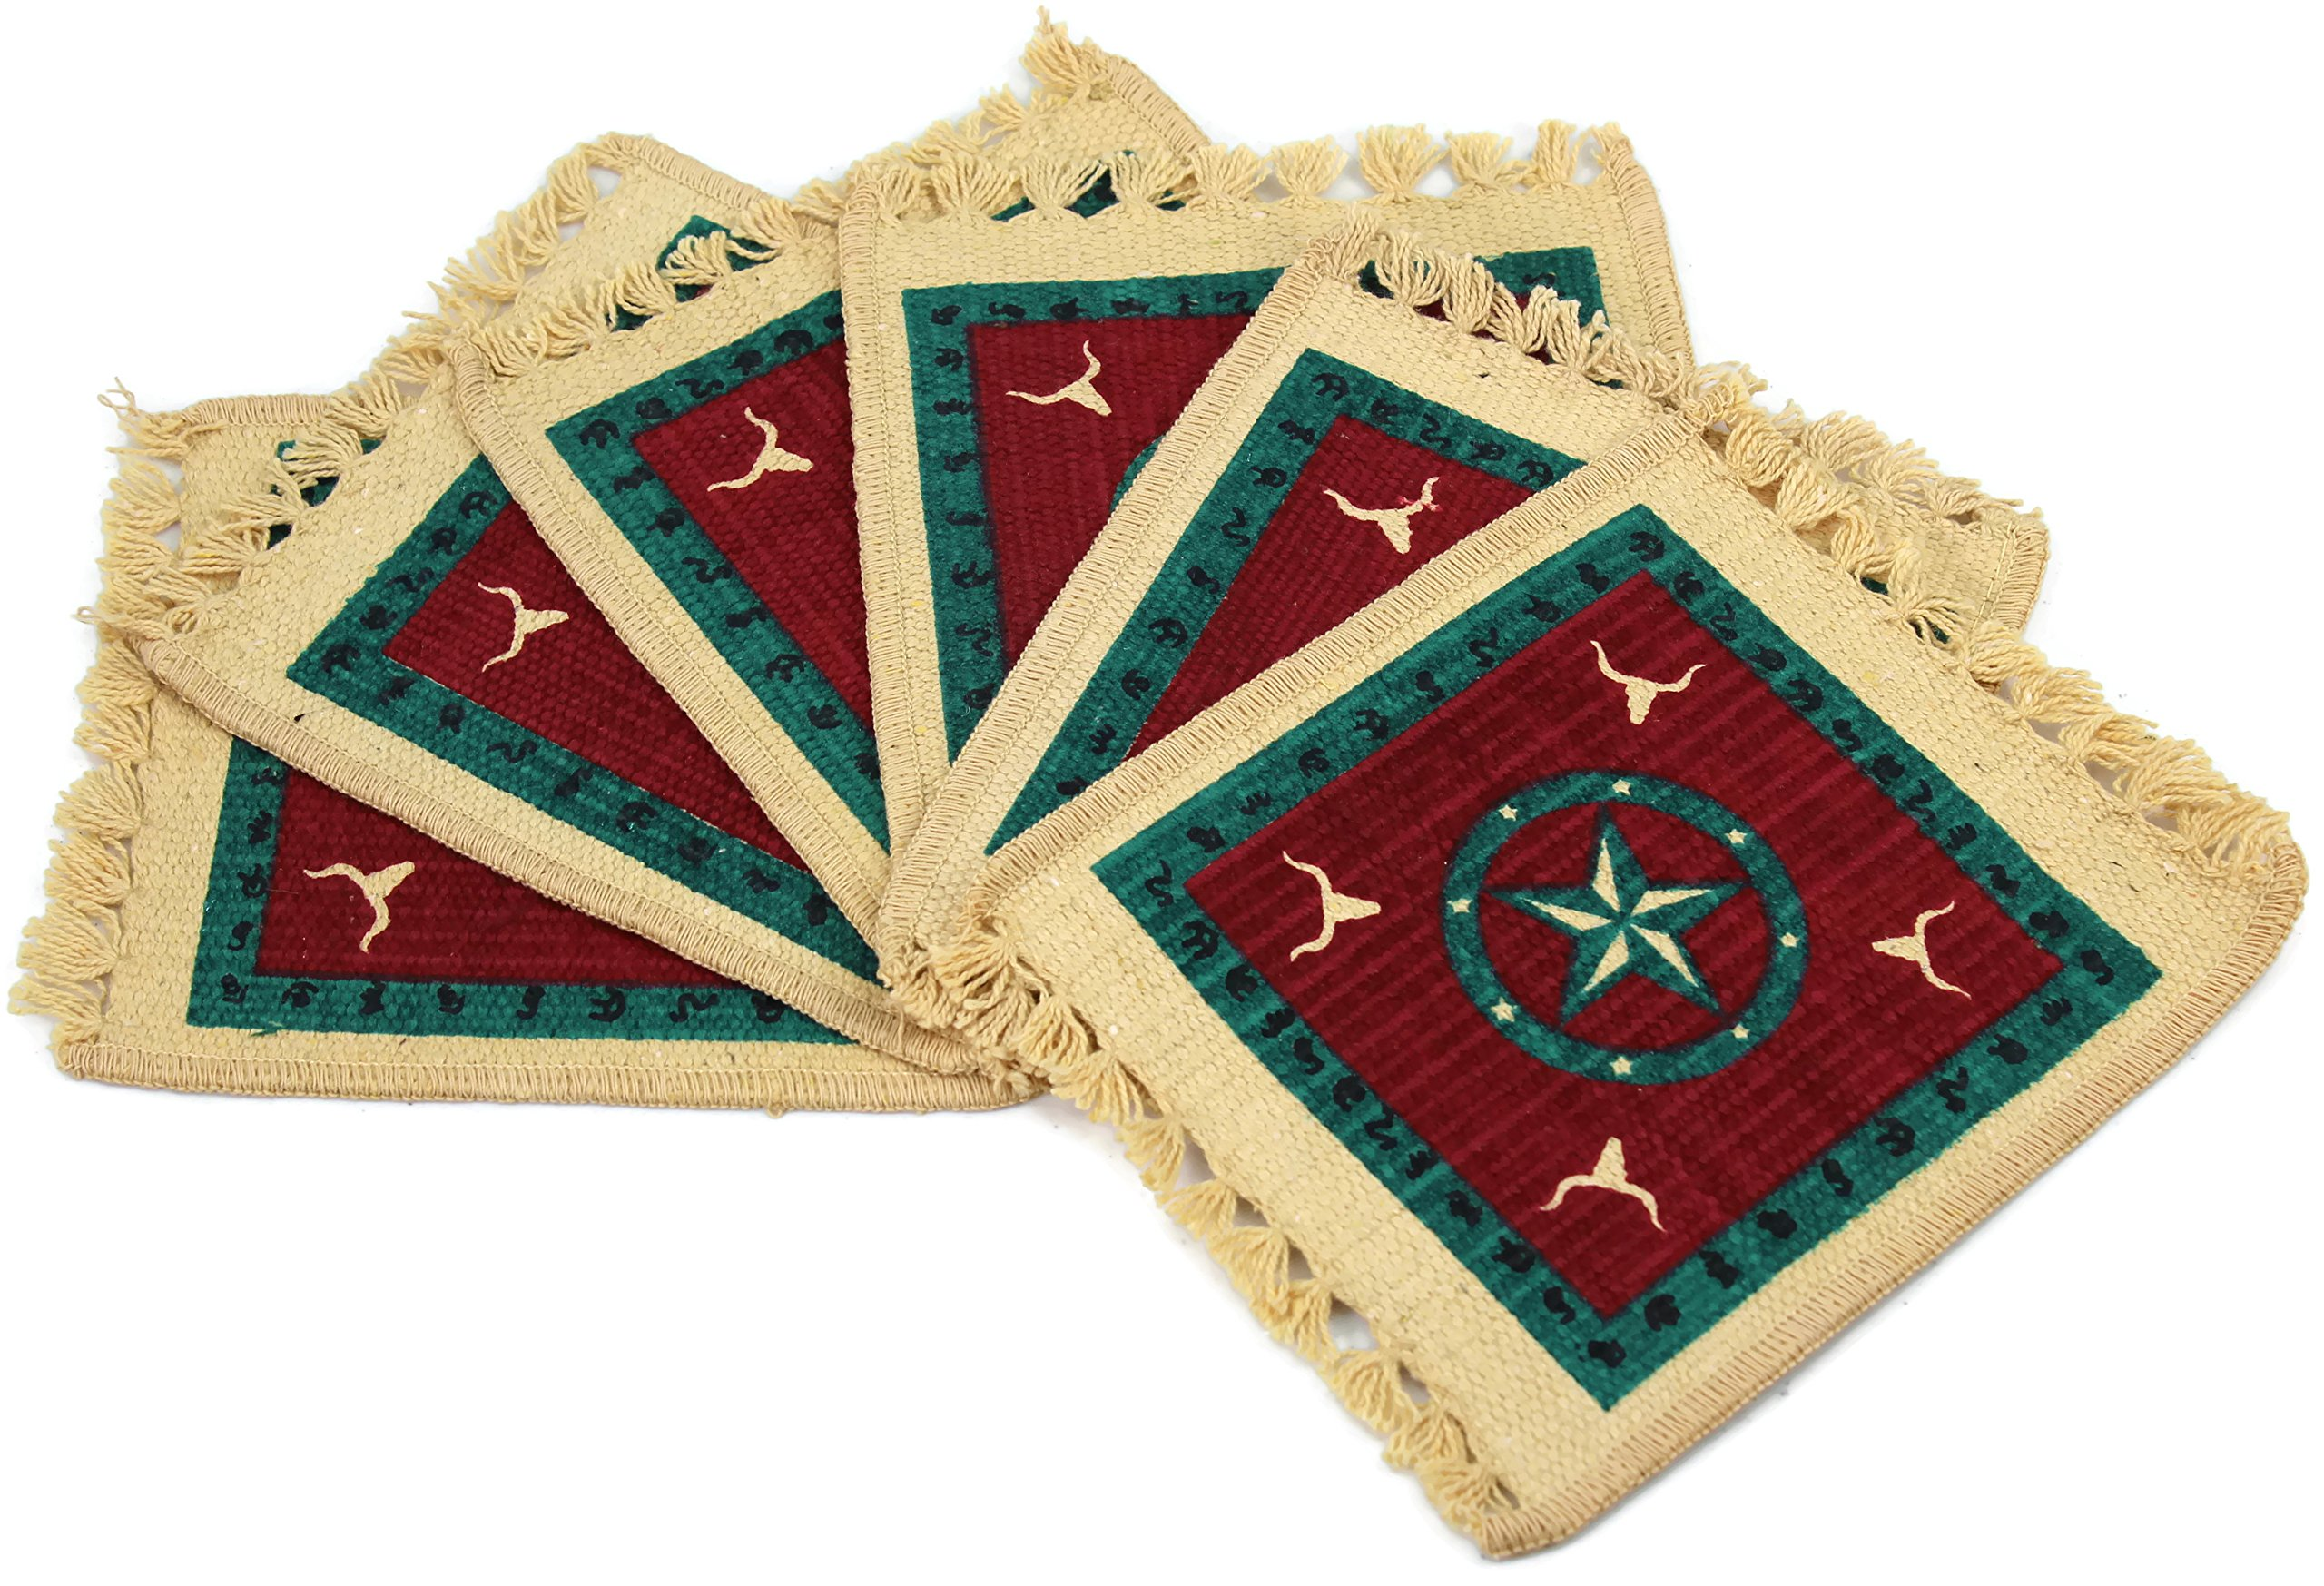 Splendid Exchange Southwest Style Woven Cotton Stencil Coasters, 7 Inches by 6 Inches, Red Star on Green, Set of 6